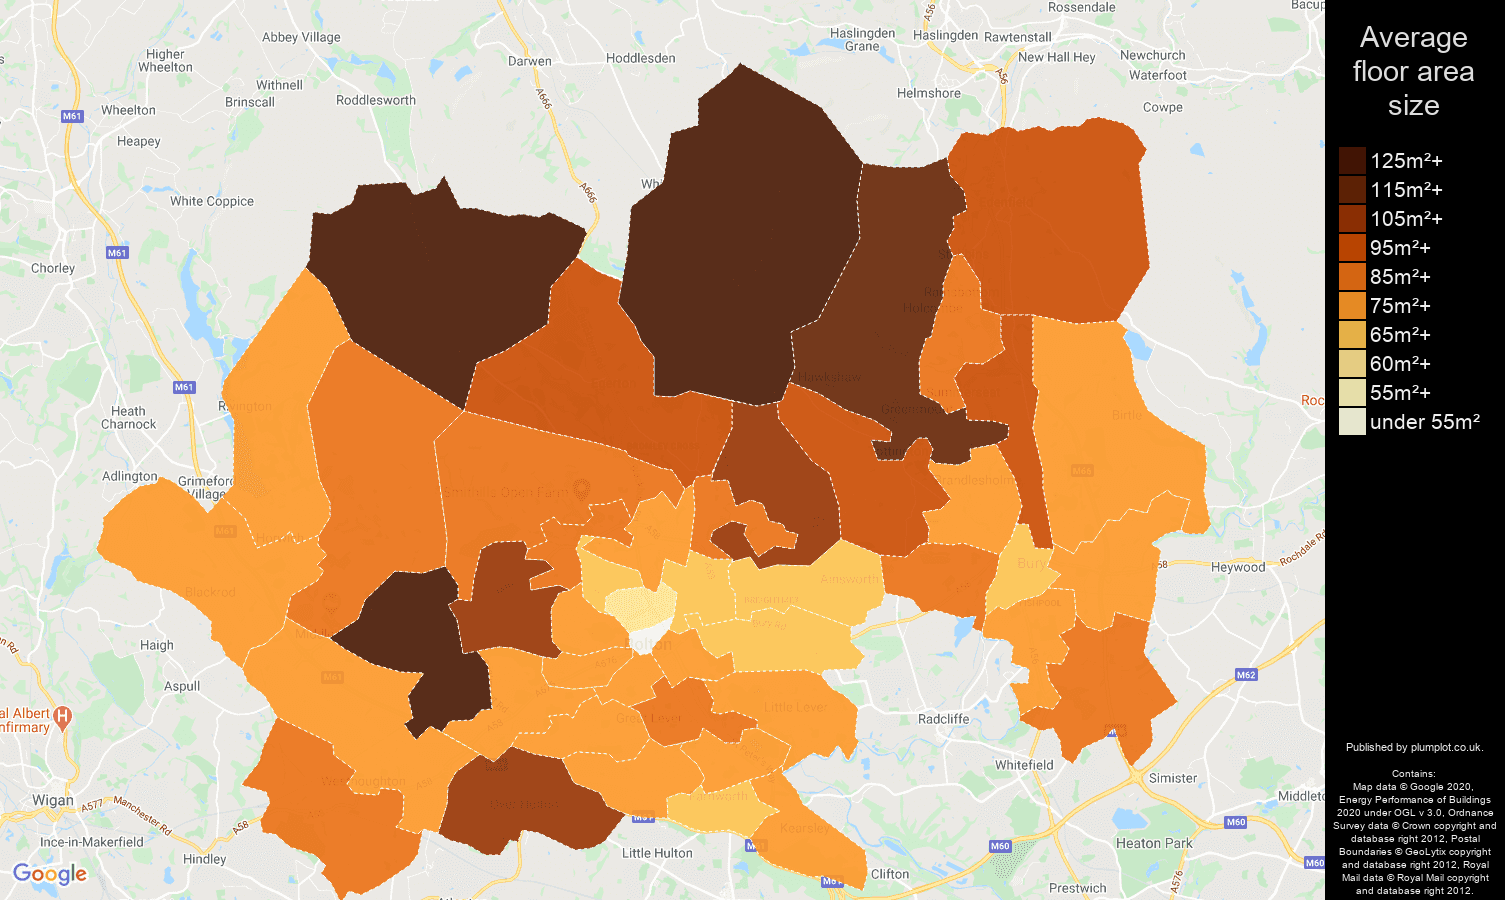 Bolton map of average floor area size of properties